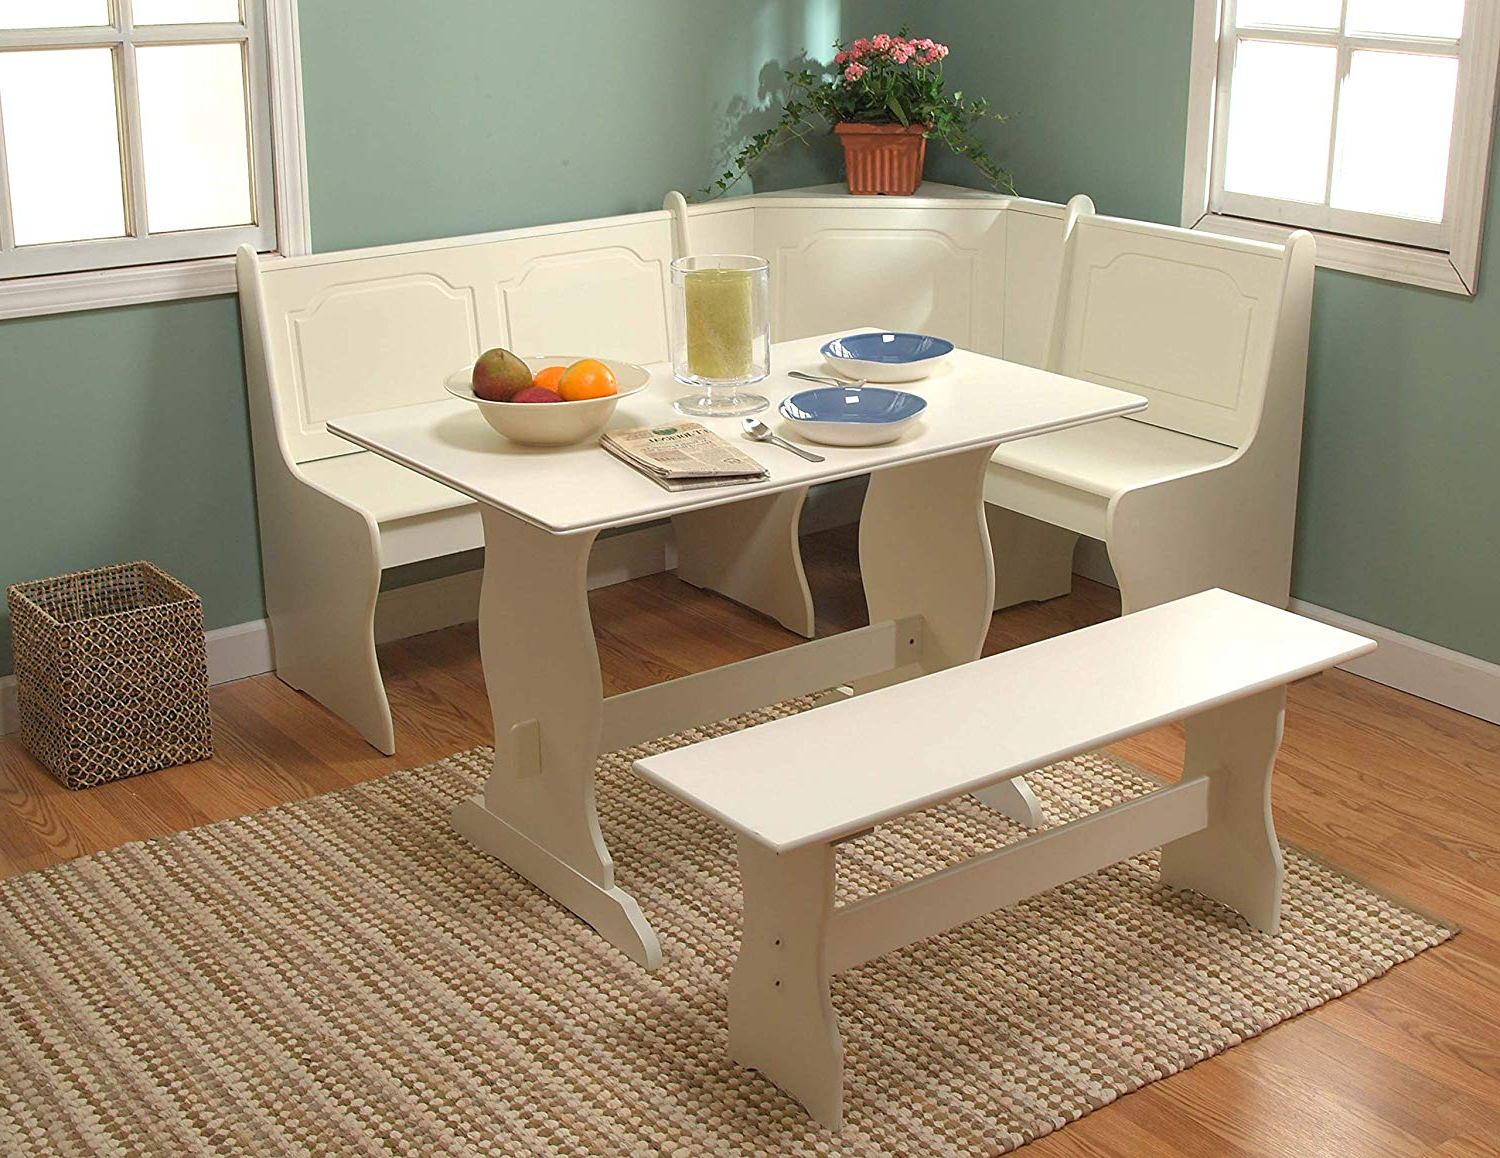 Target Marketing Systems 3 Piece Breakfast Nook Dining Set With A L Shaped  Storage Bench And A Trestle Style Dining Table And Bench, Antique White With Well Known 3 Piece Breakfast Dining Sets (Gallery 19 of 20)